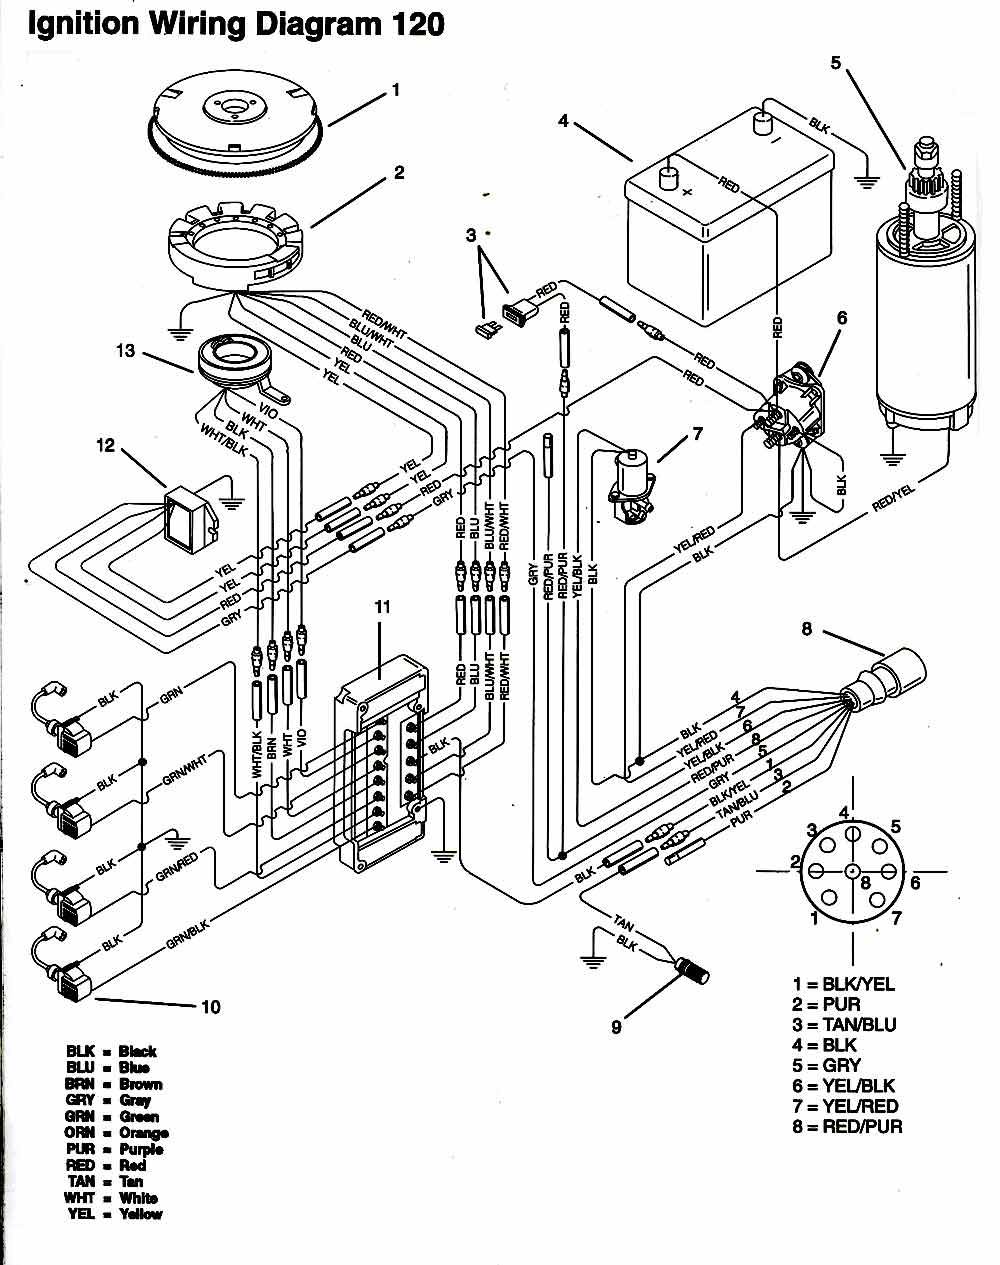 120 hp force outboard wiring diagram schematics wiring diagrams \u2022 inboard boat motor diagram chrysler outboard wiring diagrams mastertech marine rh maxrules com 120 hp force outboard upgrade 125 hp outboard motor